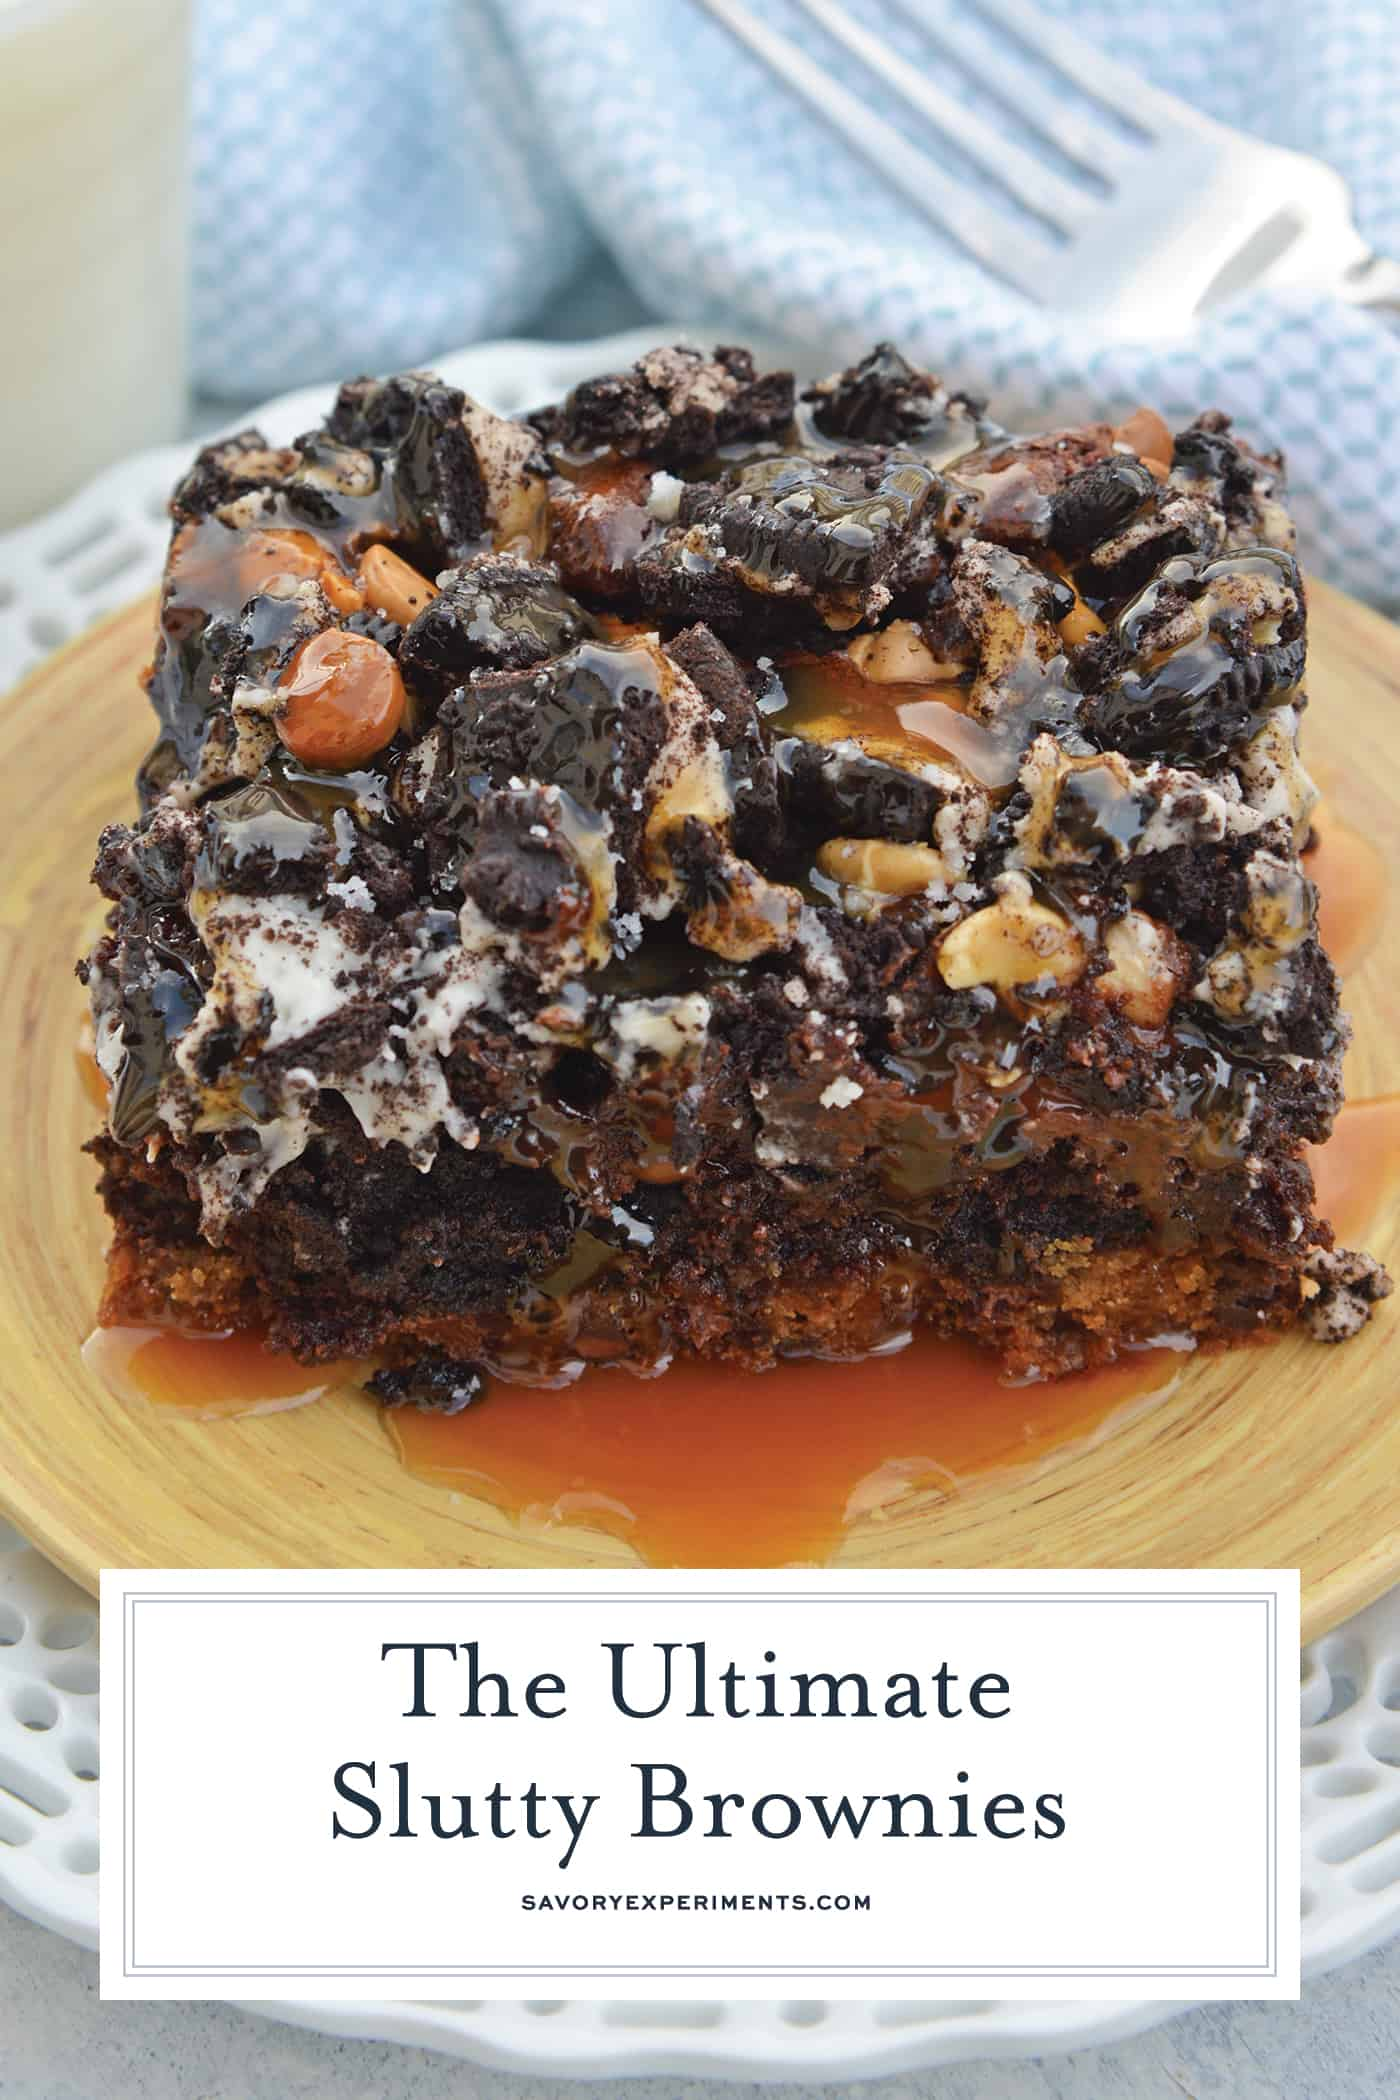 The Ultimate Slutty Brownies are layers of chocolate chip cookie dough, brownie, Oreo cookies, caramel and sea salt. The perfect decadent, sweet and salty easy dessert recipe. #sluttybrownies #bestbrownierecipe #homemadebrownies www.savoryexperiments.com